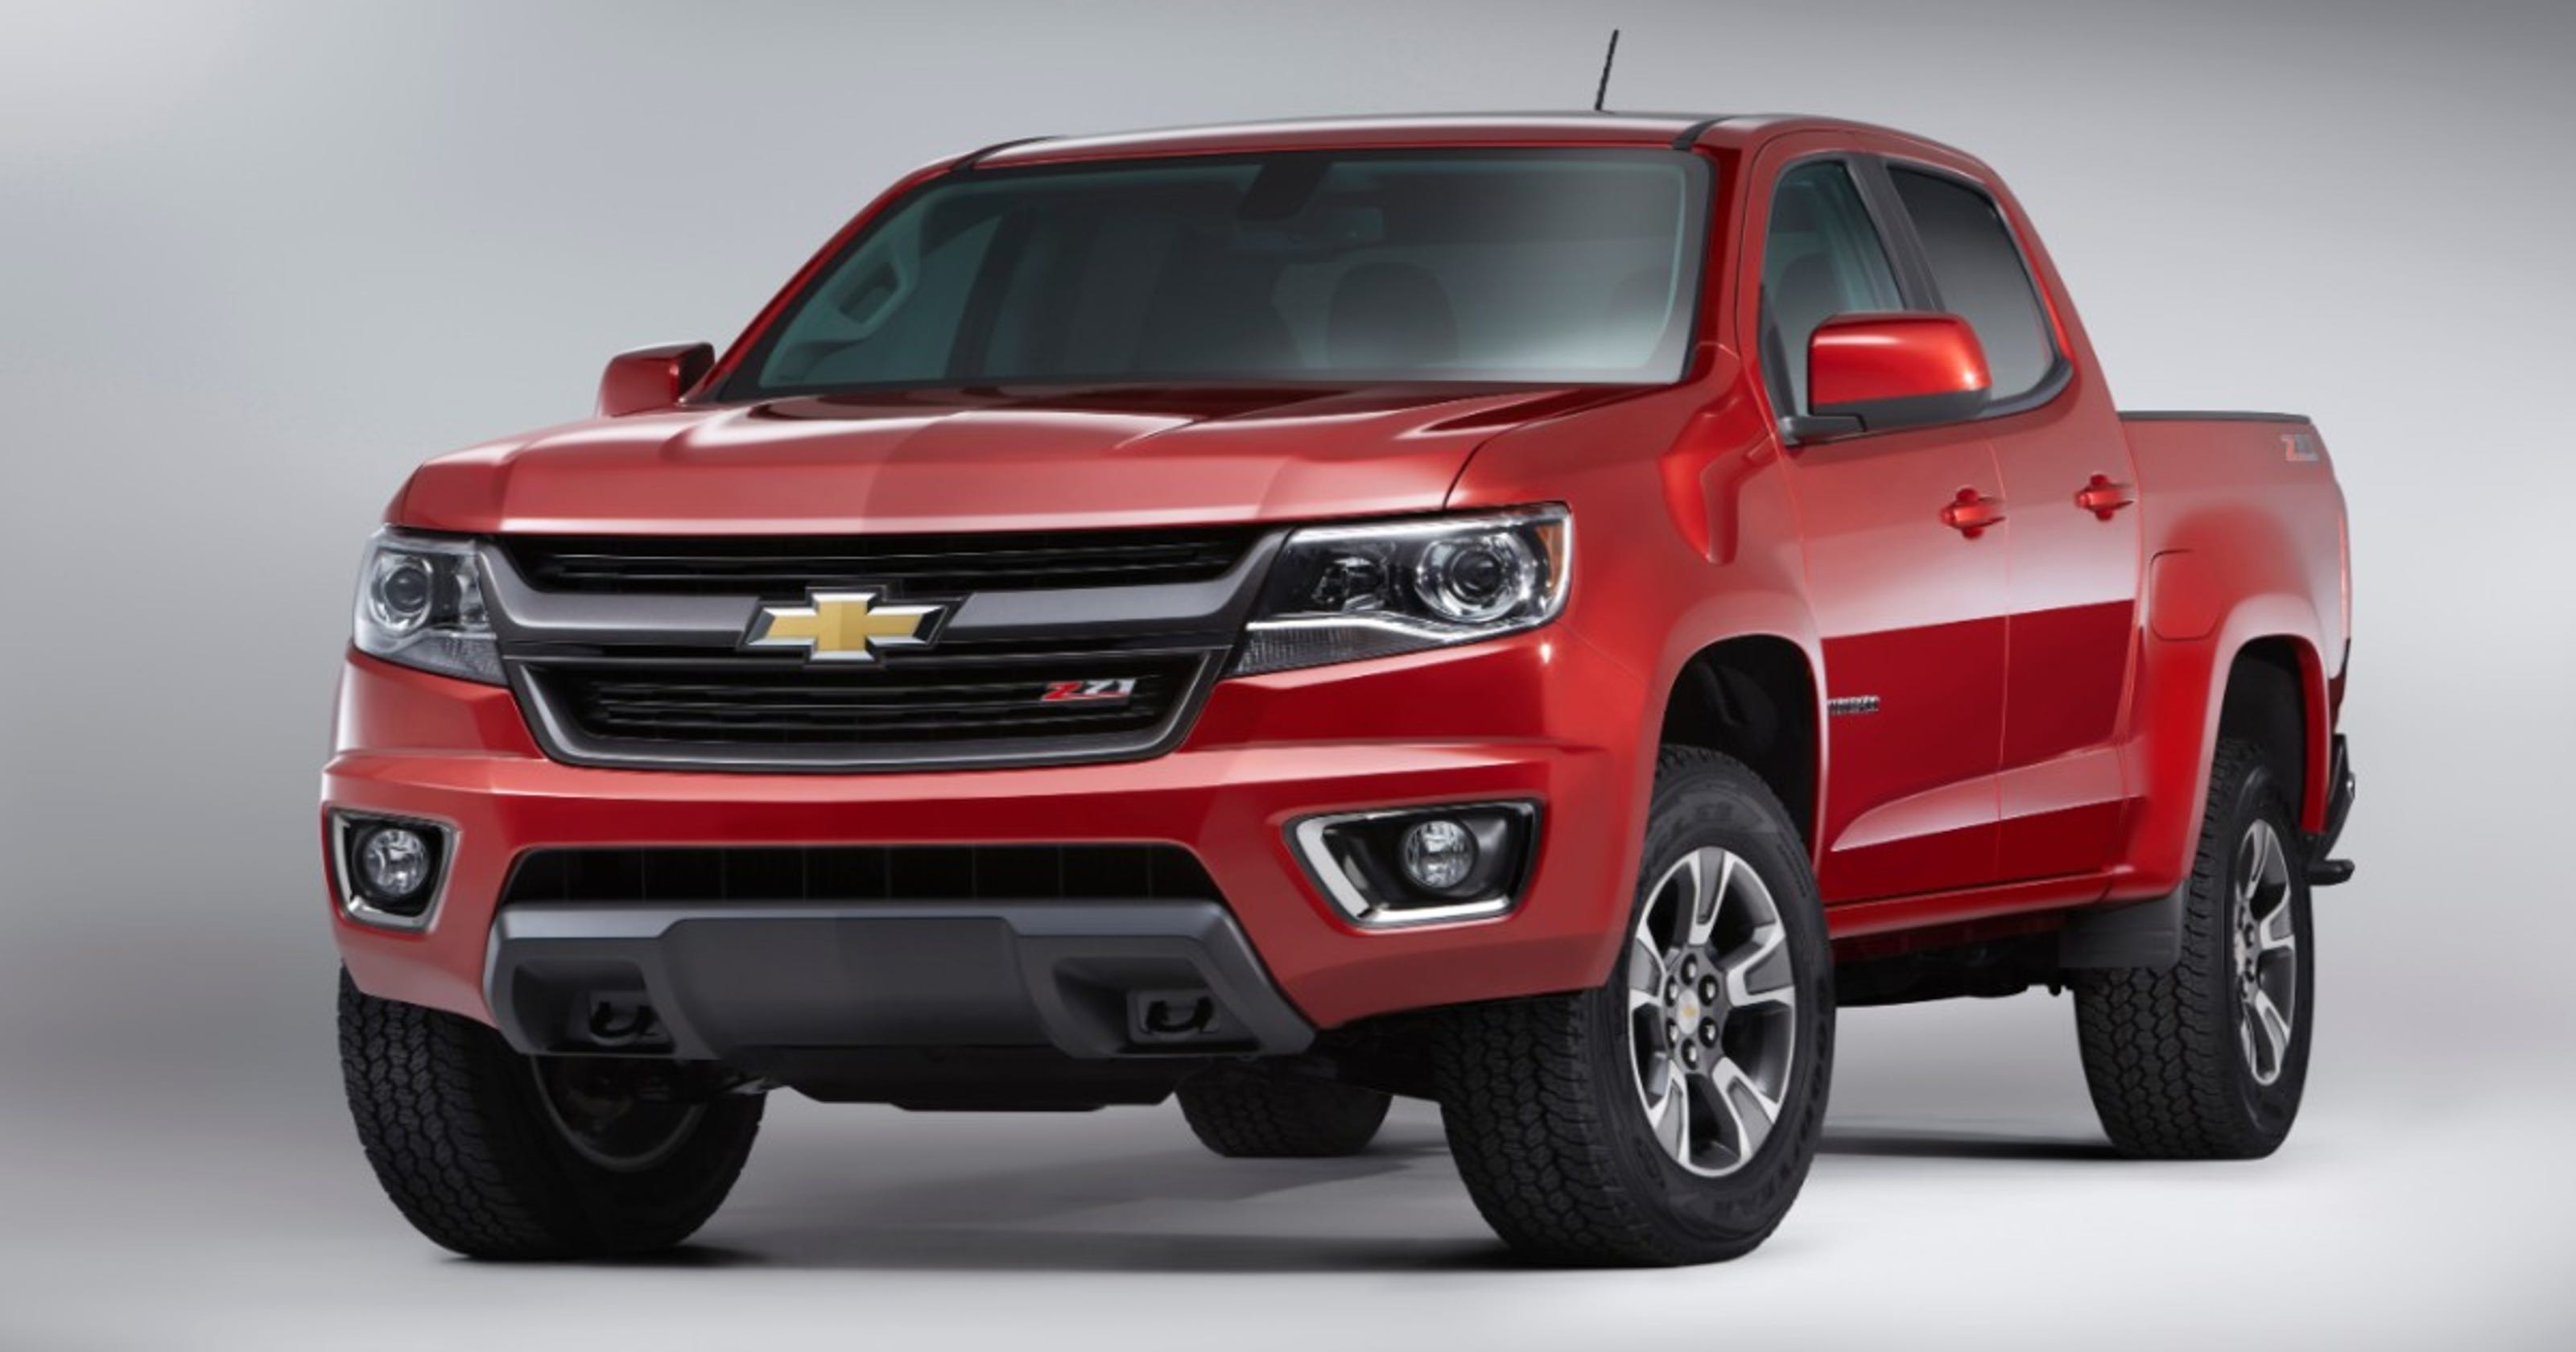 GM halts sales of Chevrolet Colorado, GMC Canyon trucks over airbag